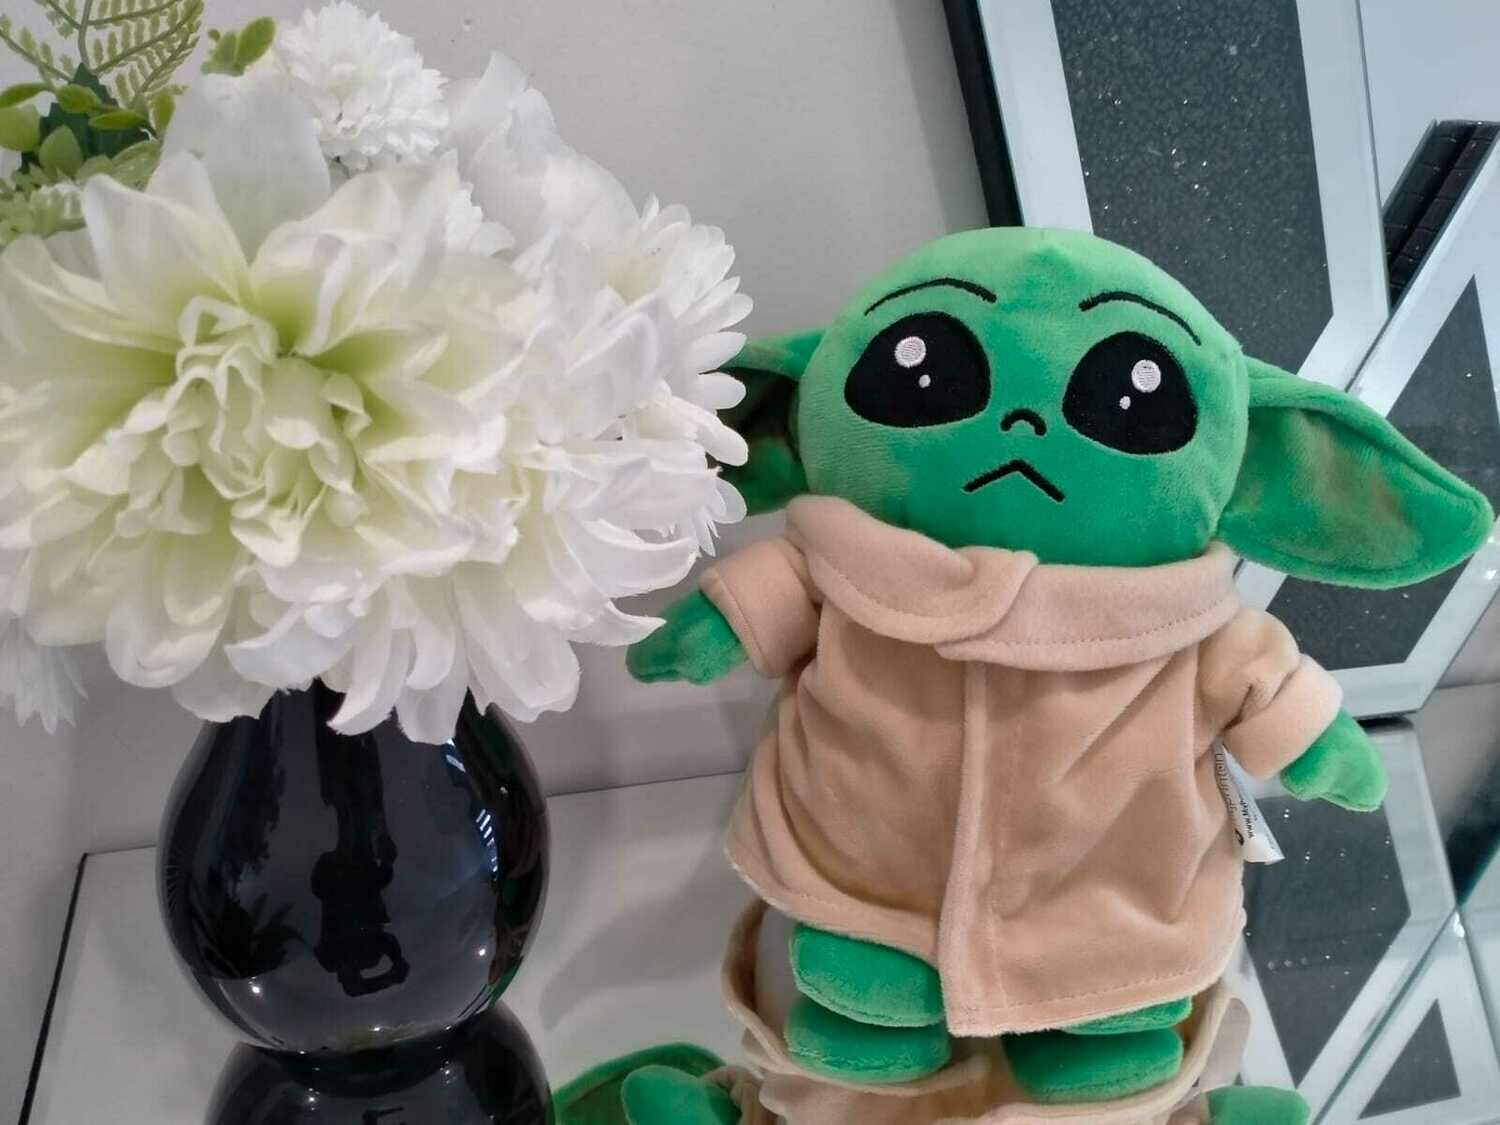 Baby Yoda Plush Collectable Figurines The Child Grogu